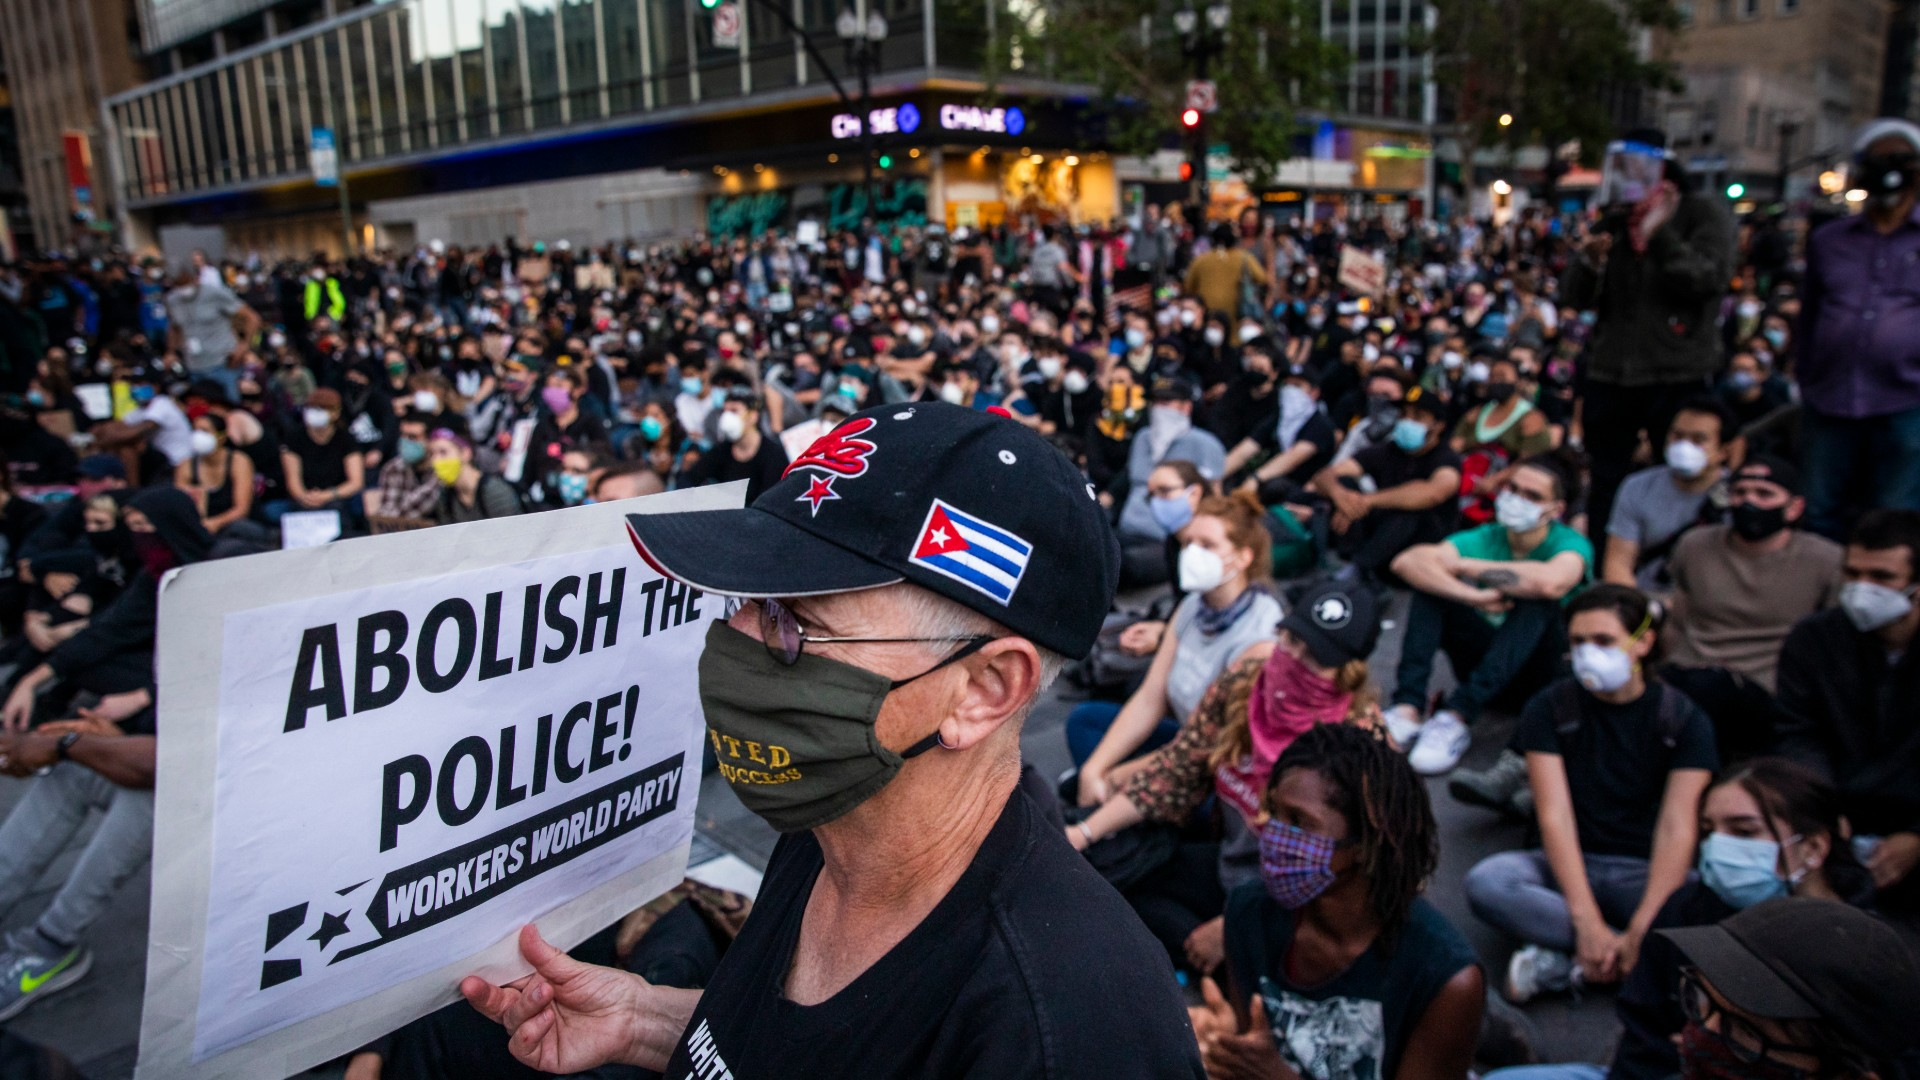 """A demonstrator holds a sign during a """"Sit Out the Curfew"""" protest against the death of George Floyd who died on May 25 in Minneapolis whilst in police custody, along a street in Oakland, California on June 3, 2020. (Philip Pacheco/AFP/Getty Images)"""